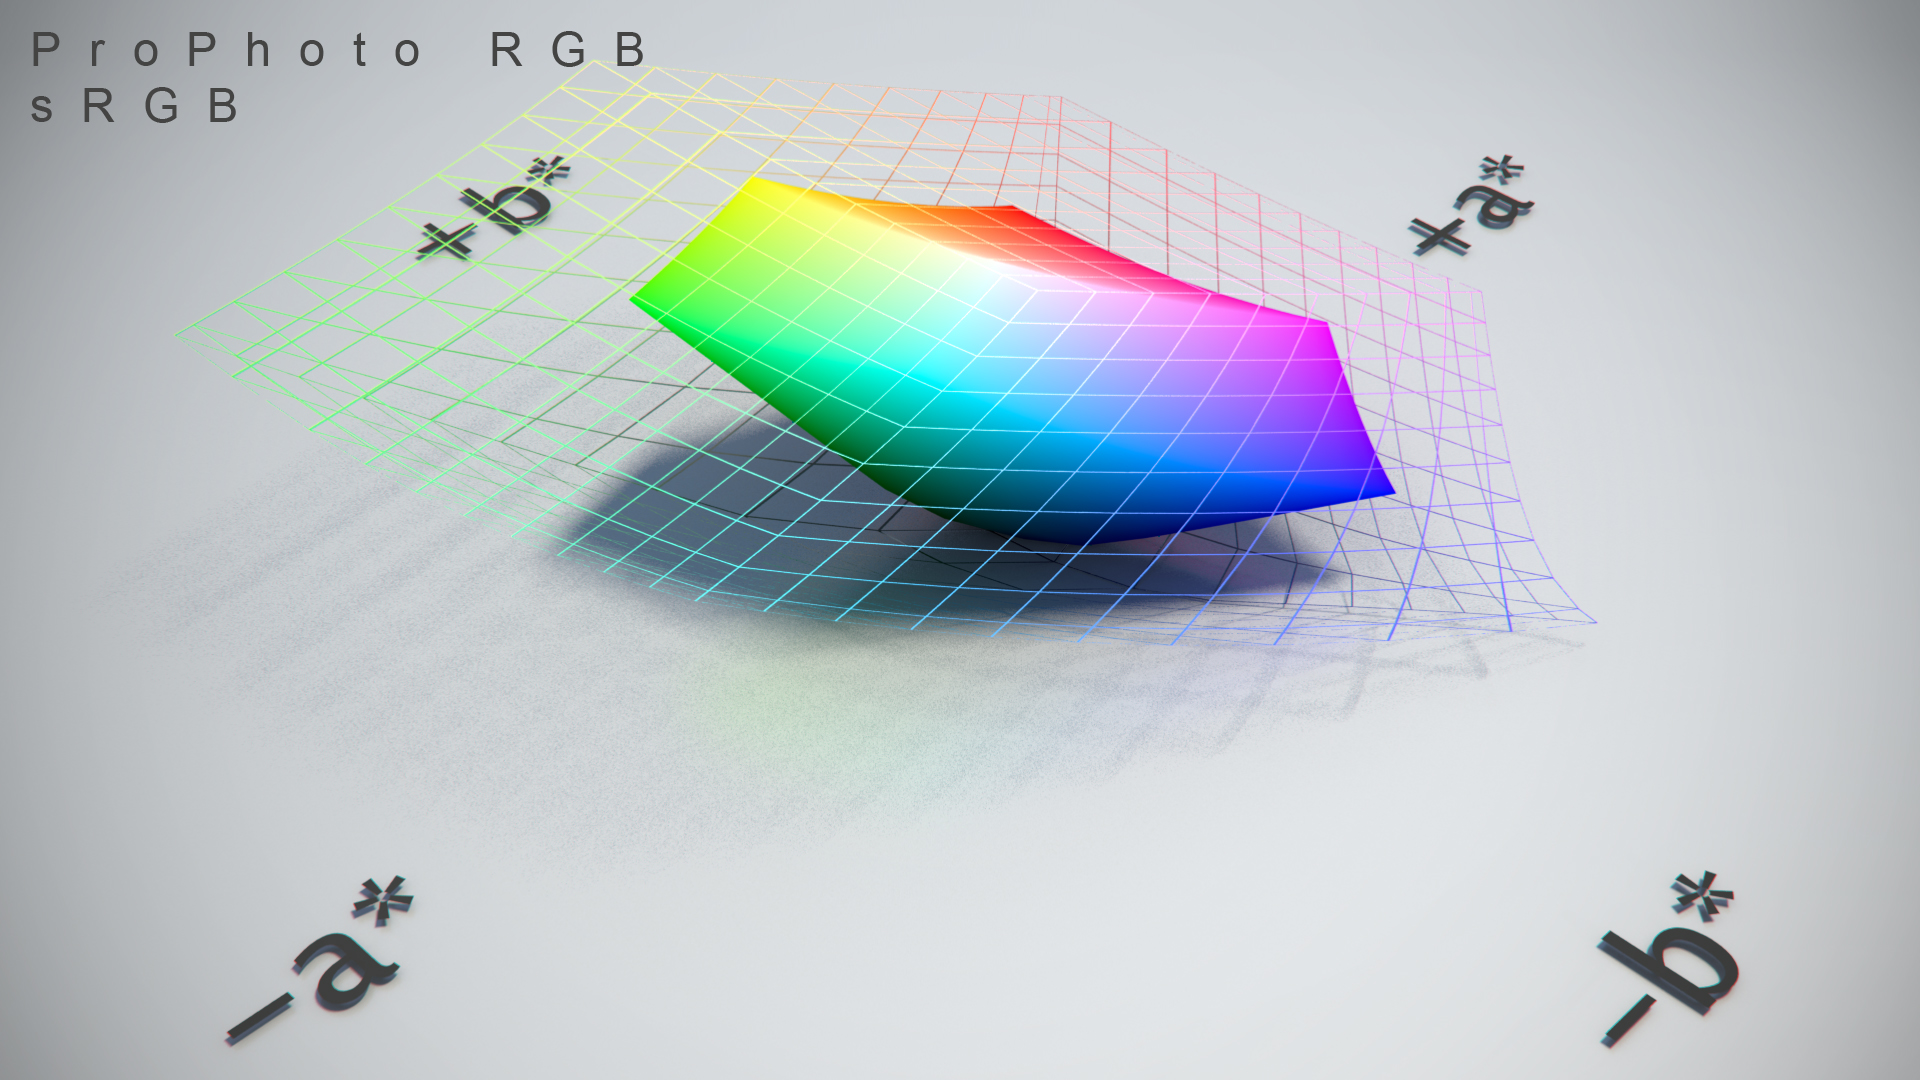 http://thomasmansencal.com/Sharing/Colour/Support/Pictures/Maya_sRGB_ProPhoto_RGB_CIE_Lab_001.jpg